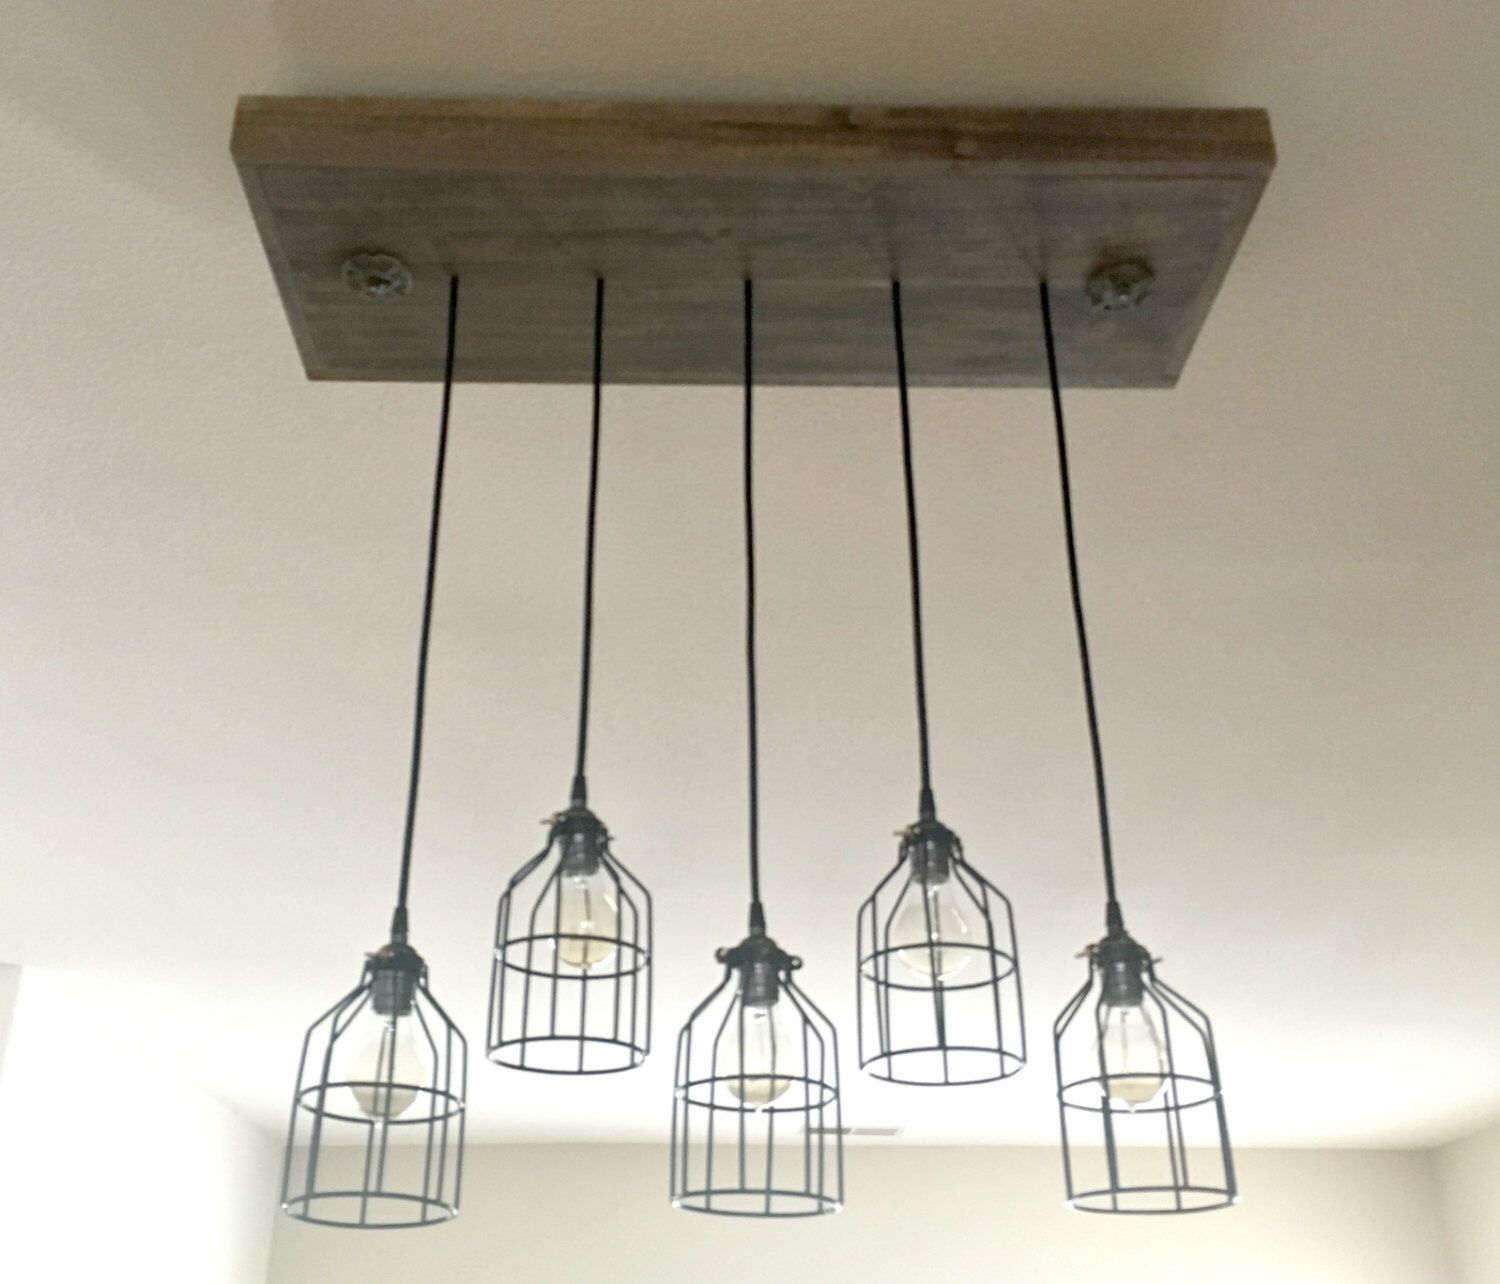 Vintage Industrial Pendant Lamp with wire guard, Wood Light Fixture ...